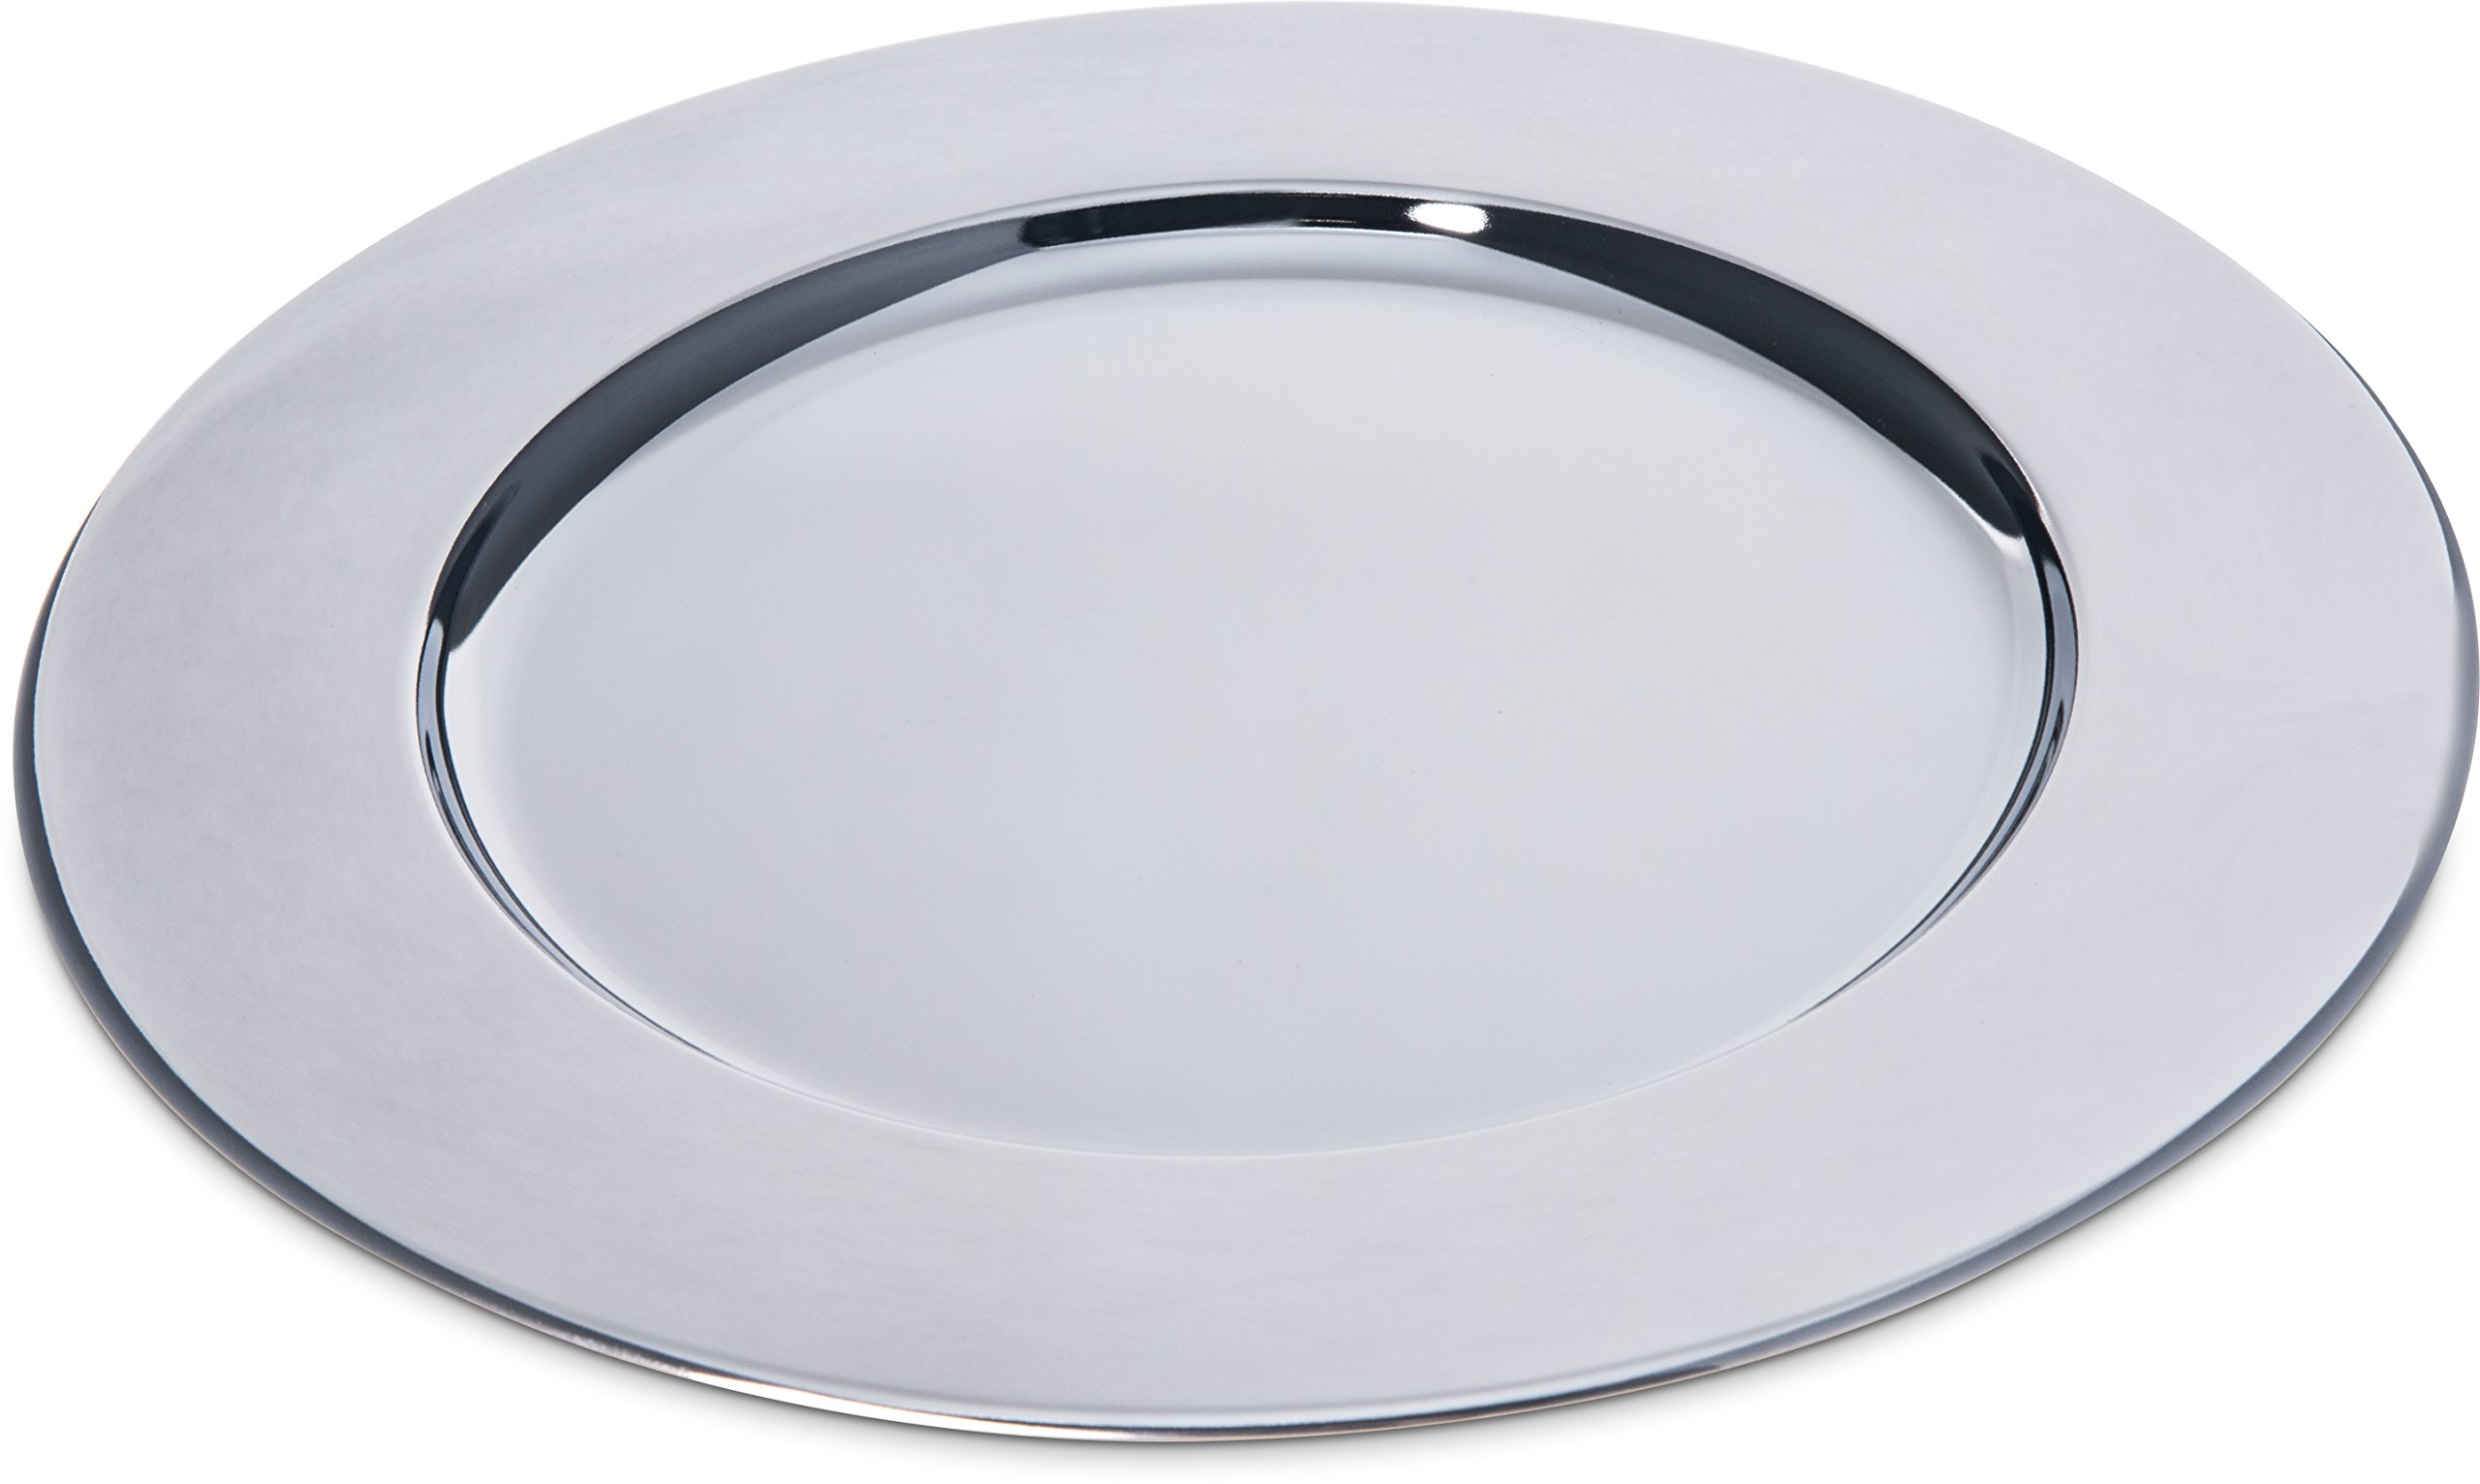 Carlisle 608924 Celebration Chrome Plated Iron Charger Plate, 12.19'' Diameter x 0.44'' Height (Case of 12)